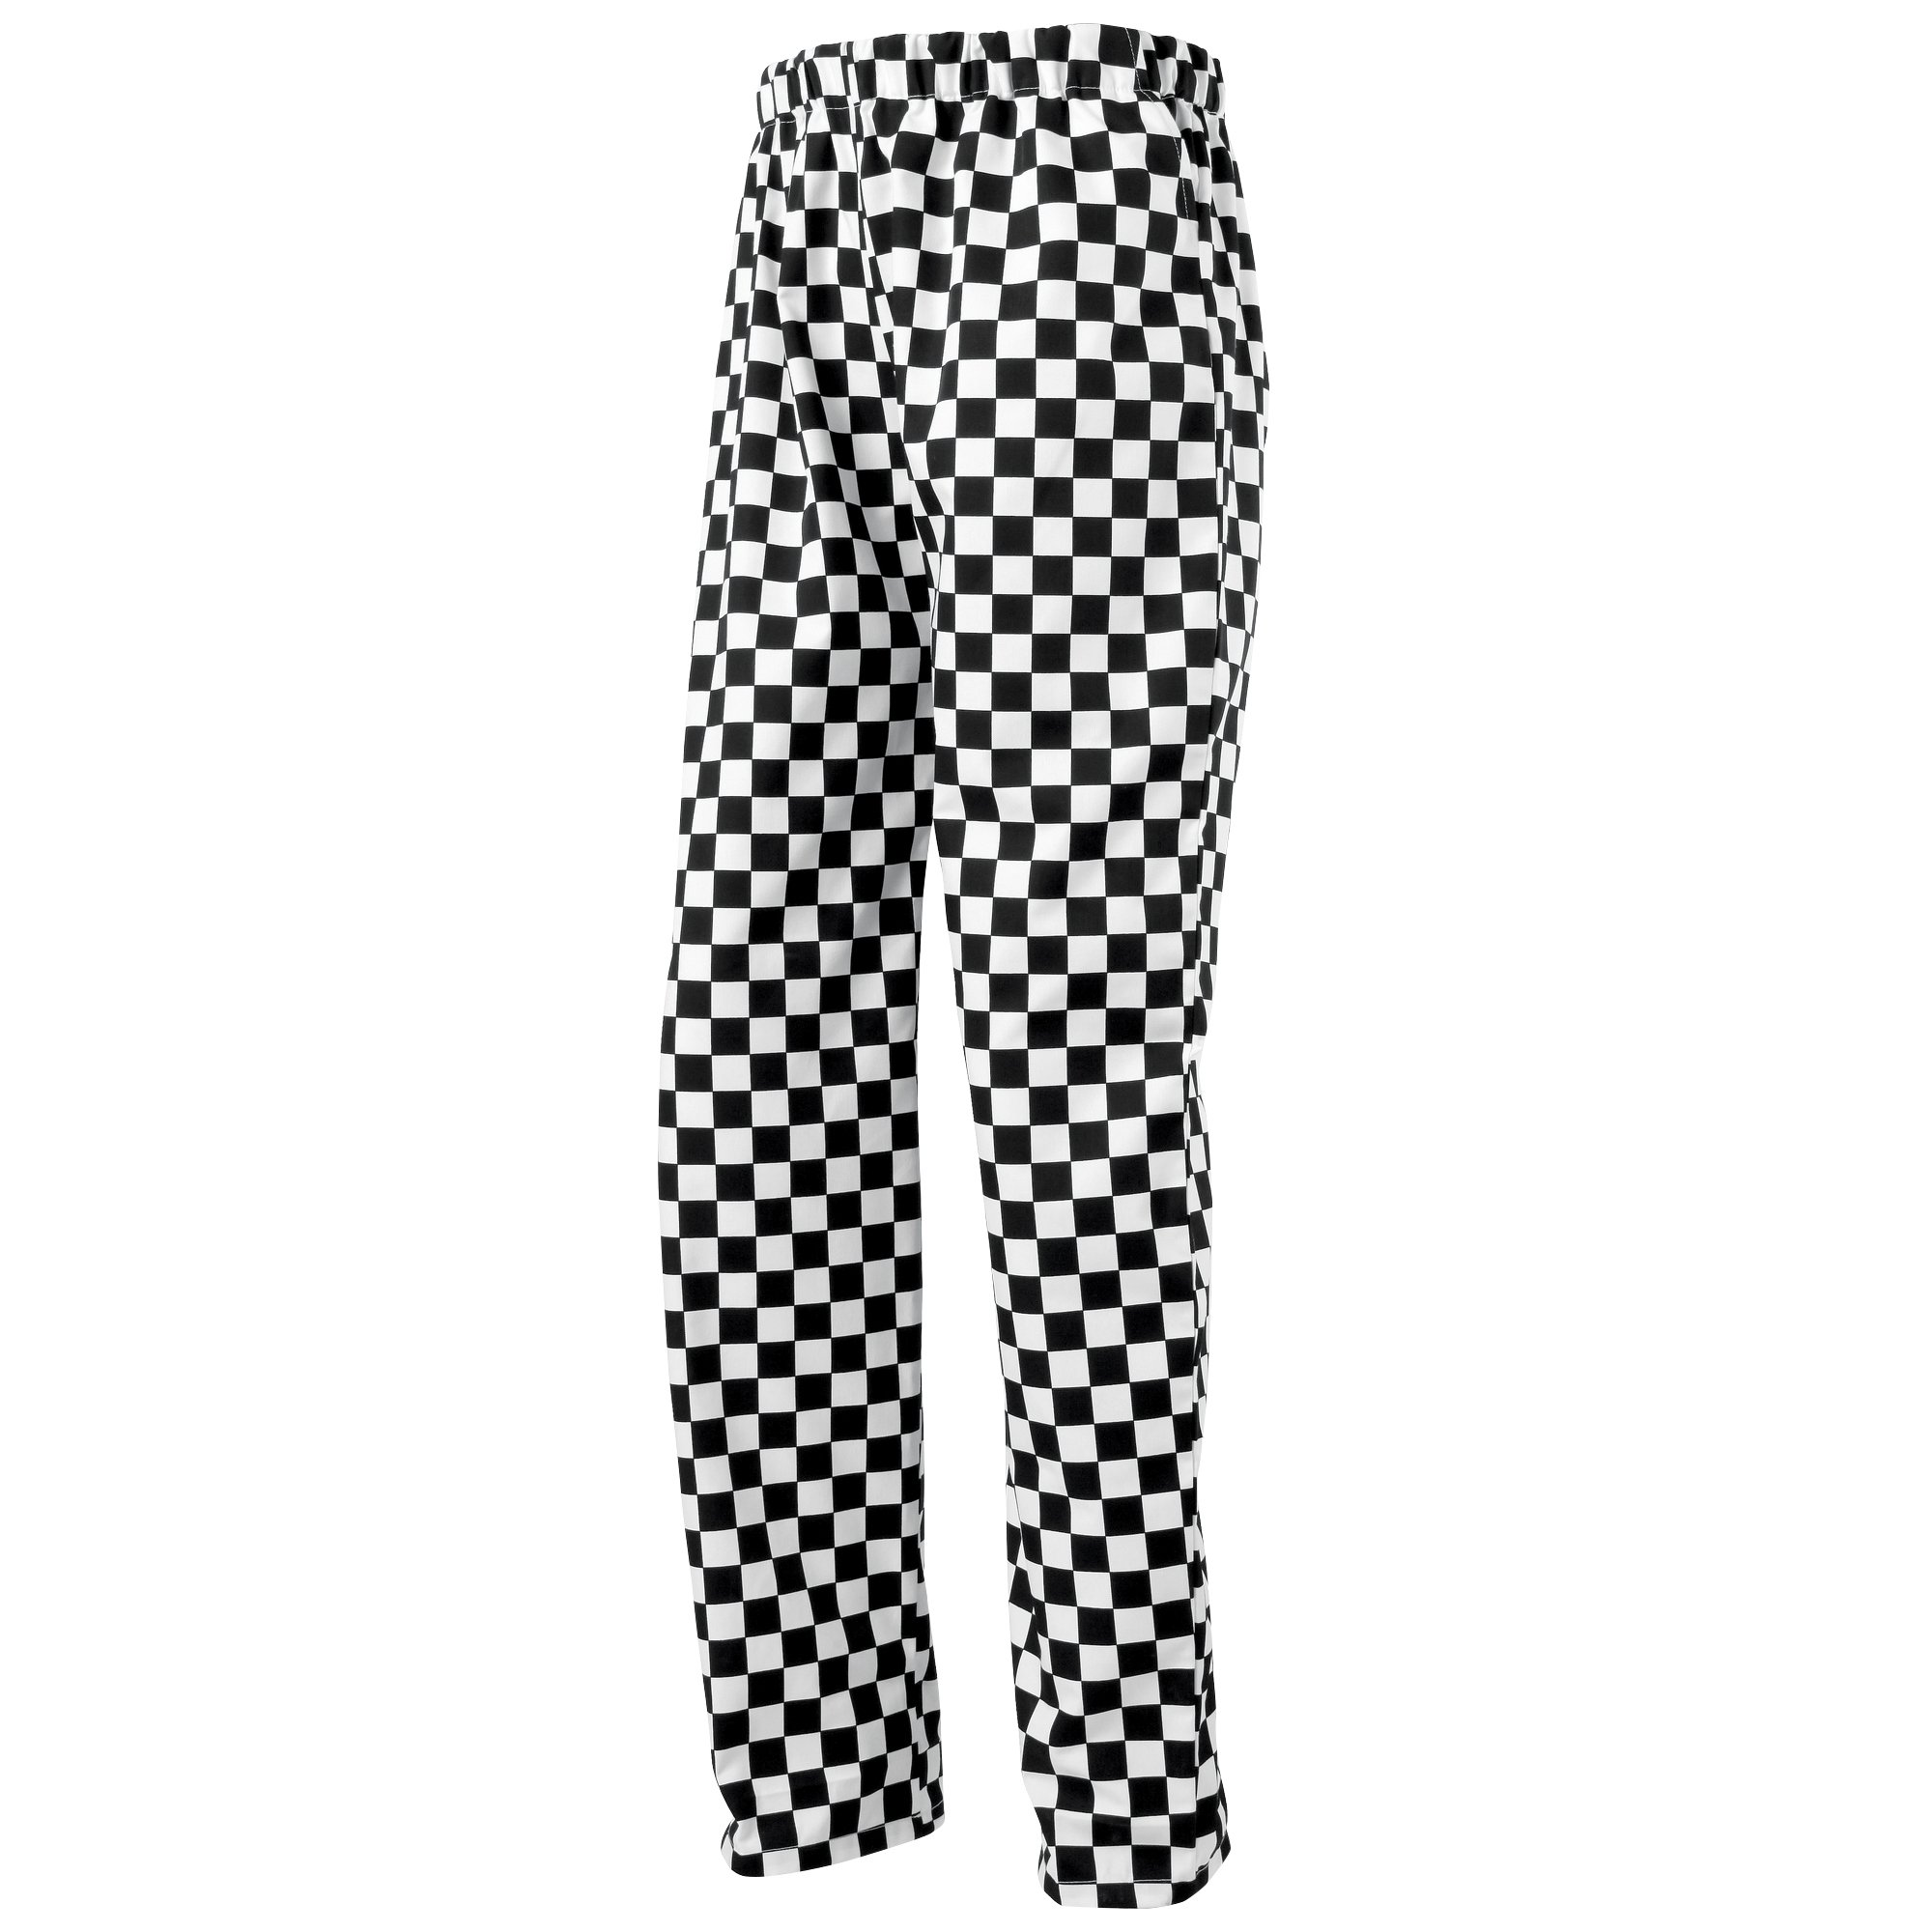 Premier Essential Unisex Chefs Trouser / Catering Workwear (XL) (Black/White (Big Check)) by Premier